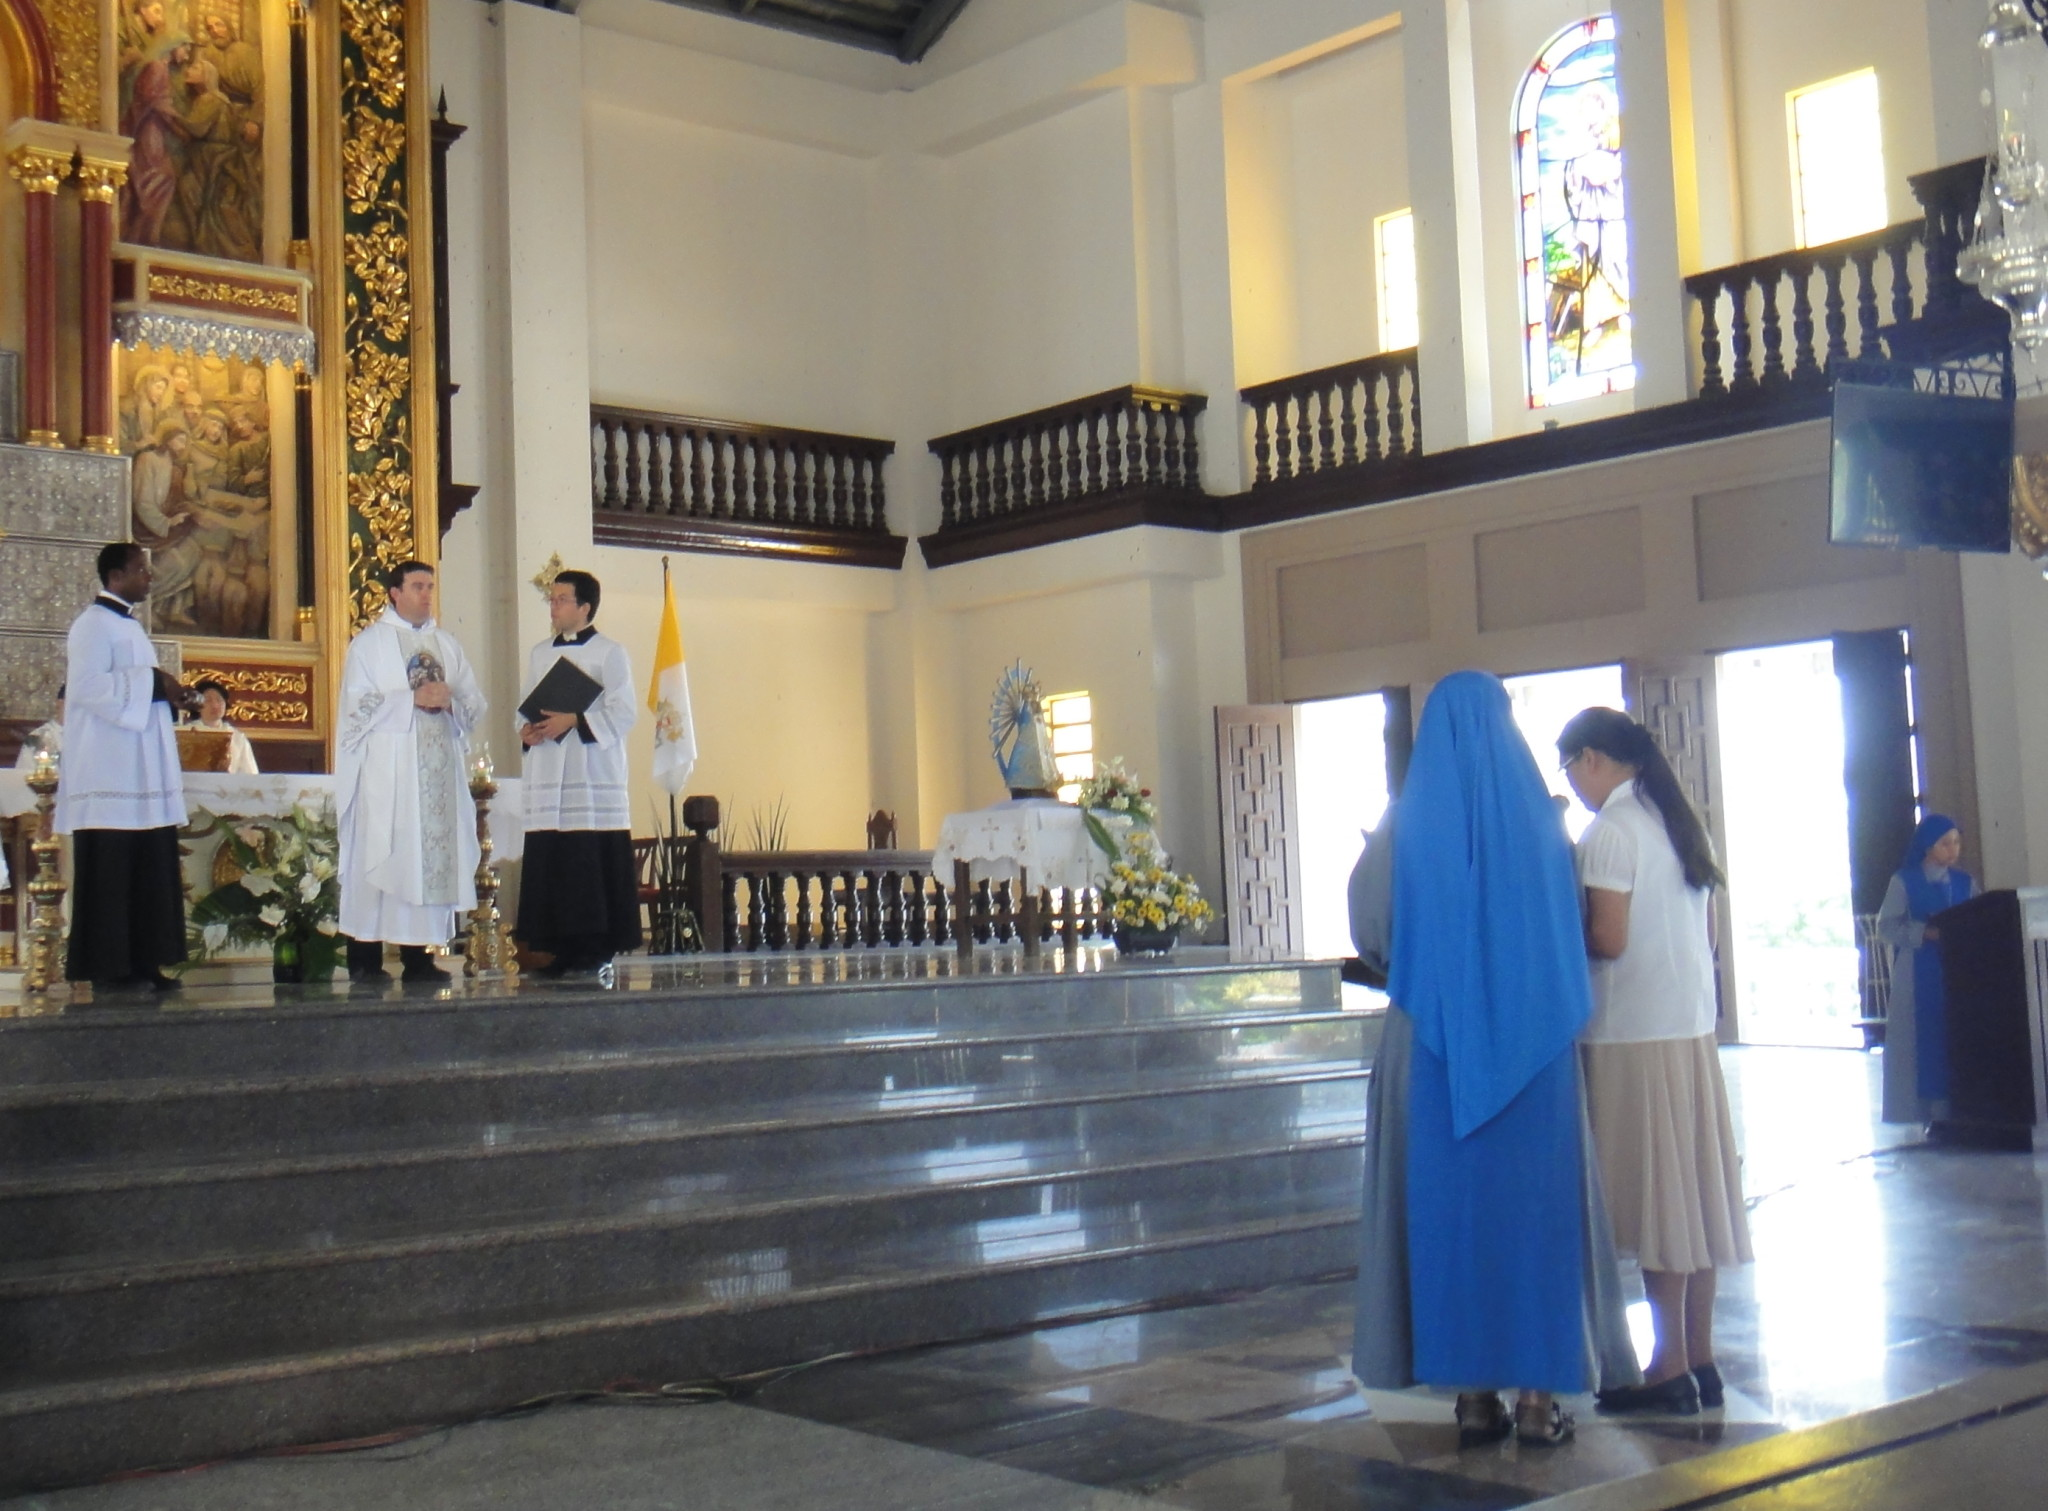 Third Order Member with Private Vows